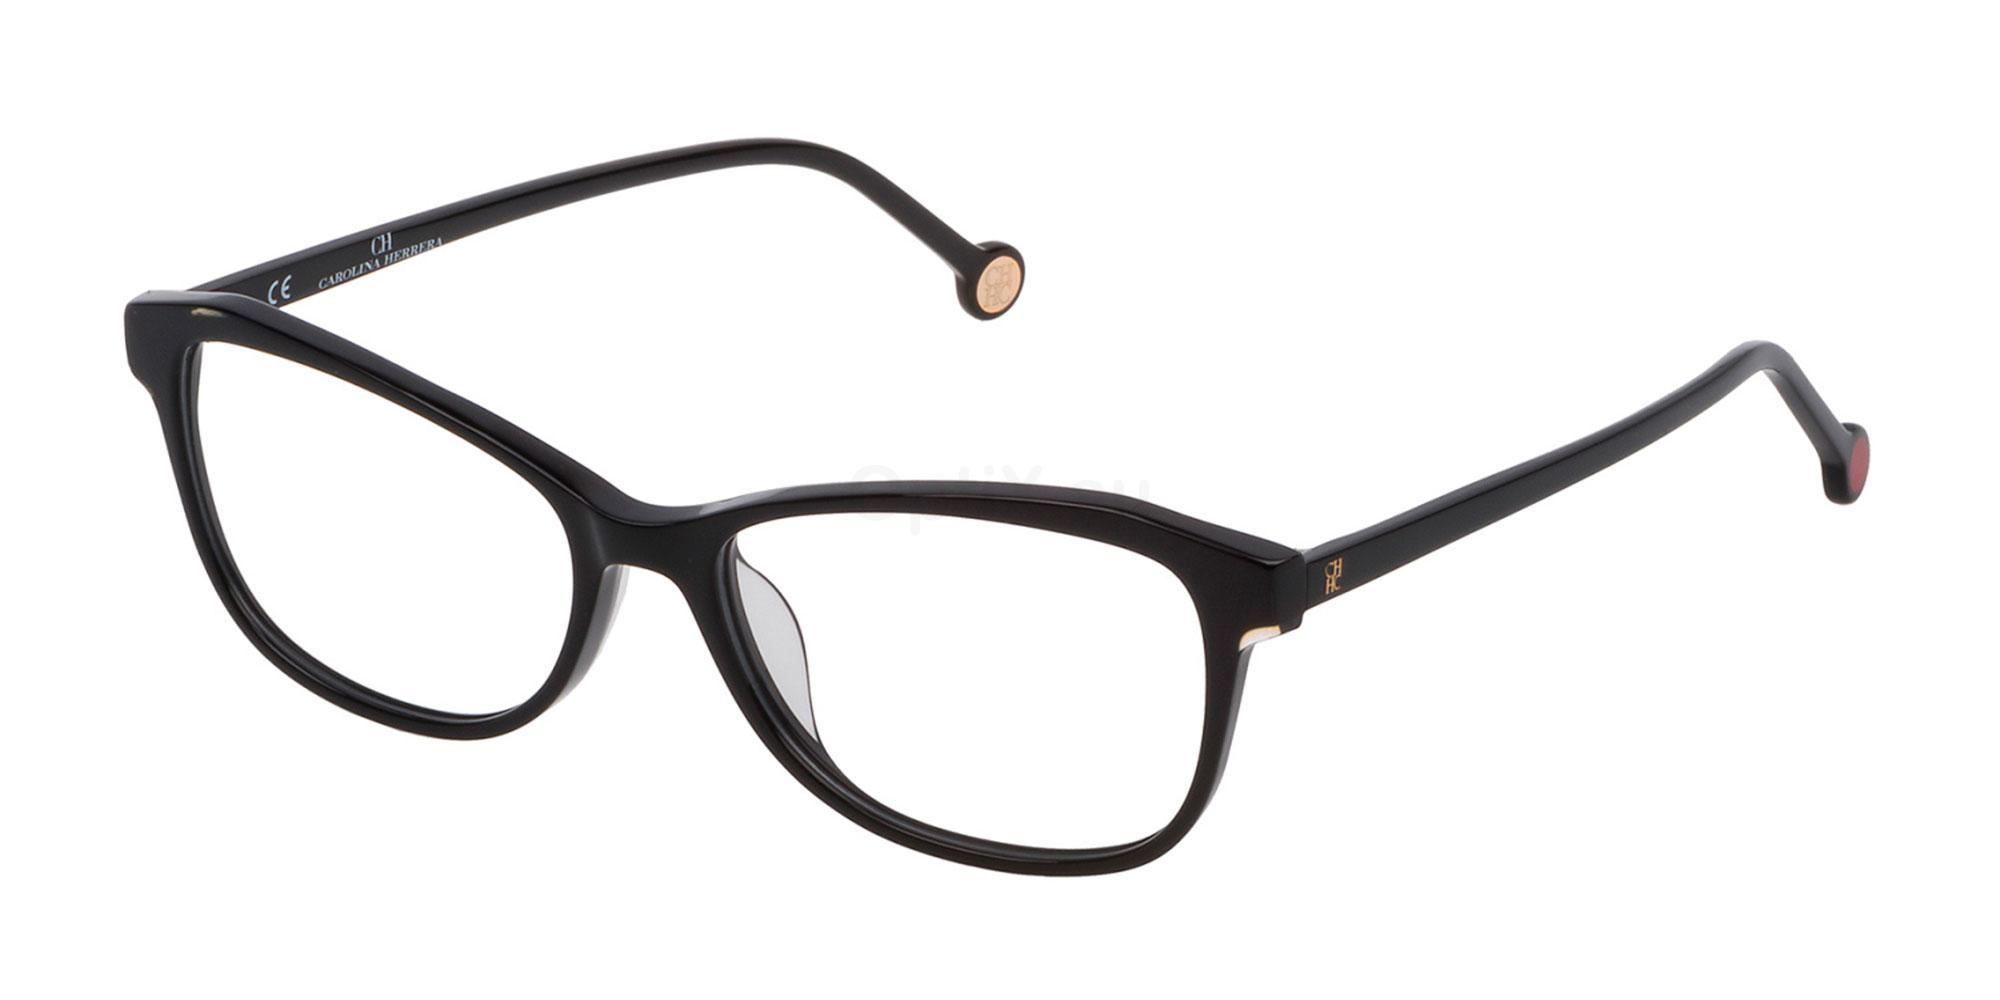 0700 VHE776 Glasses, CH Carolina Herrera